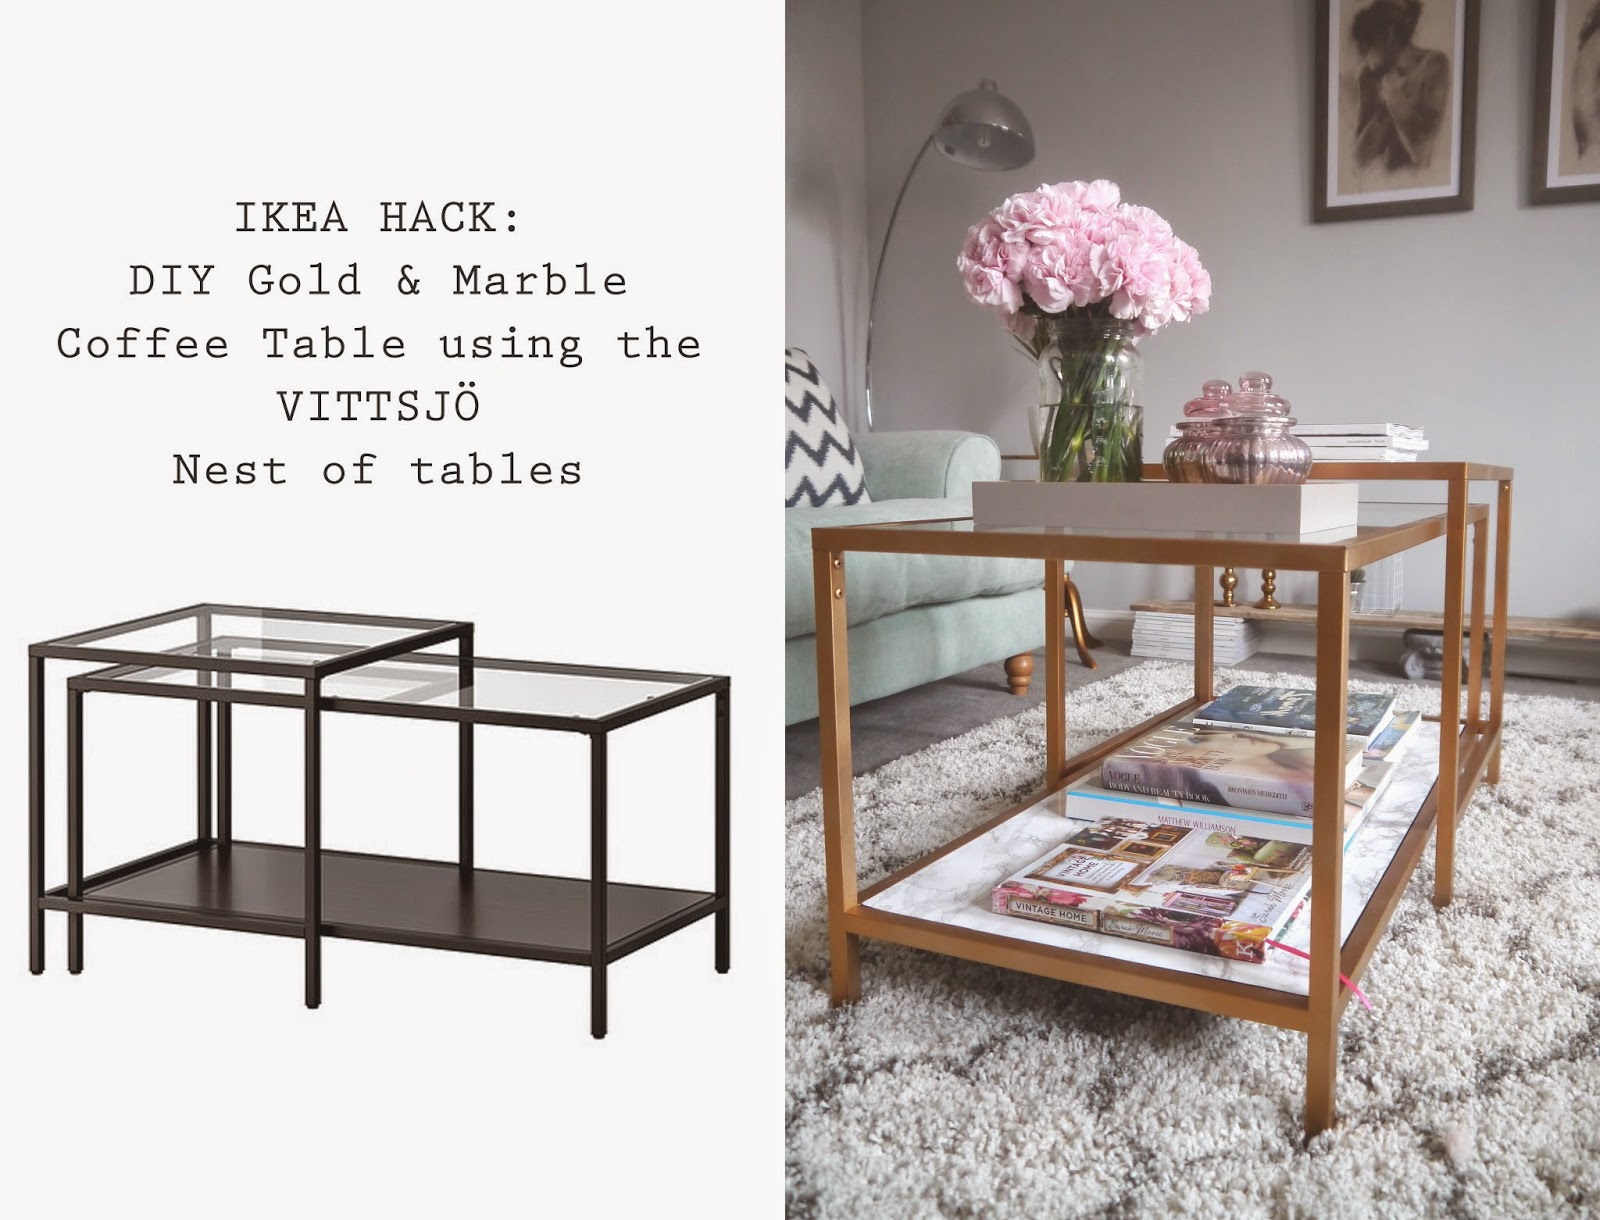 Ikea Hack Diy Gold And Marble Coffee Table Using The Vittsjo Nest Of Tables